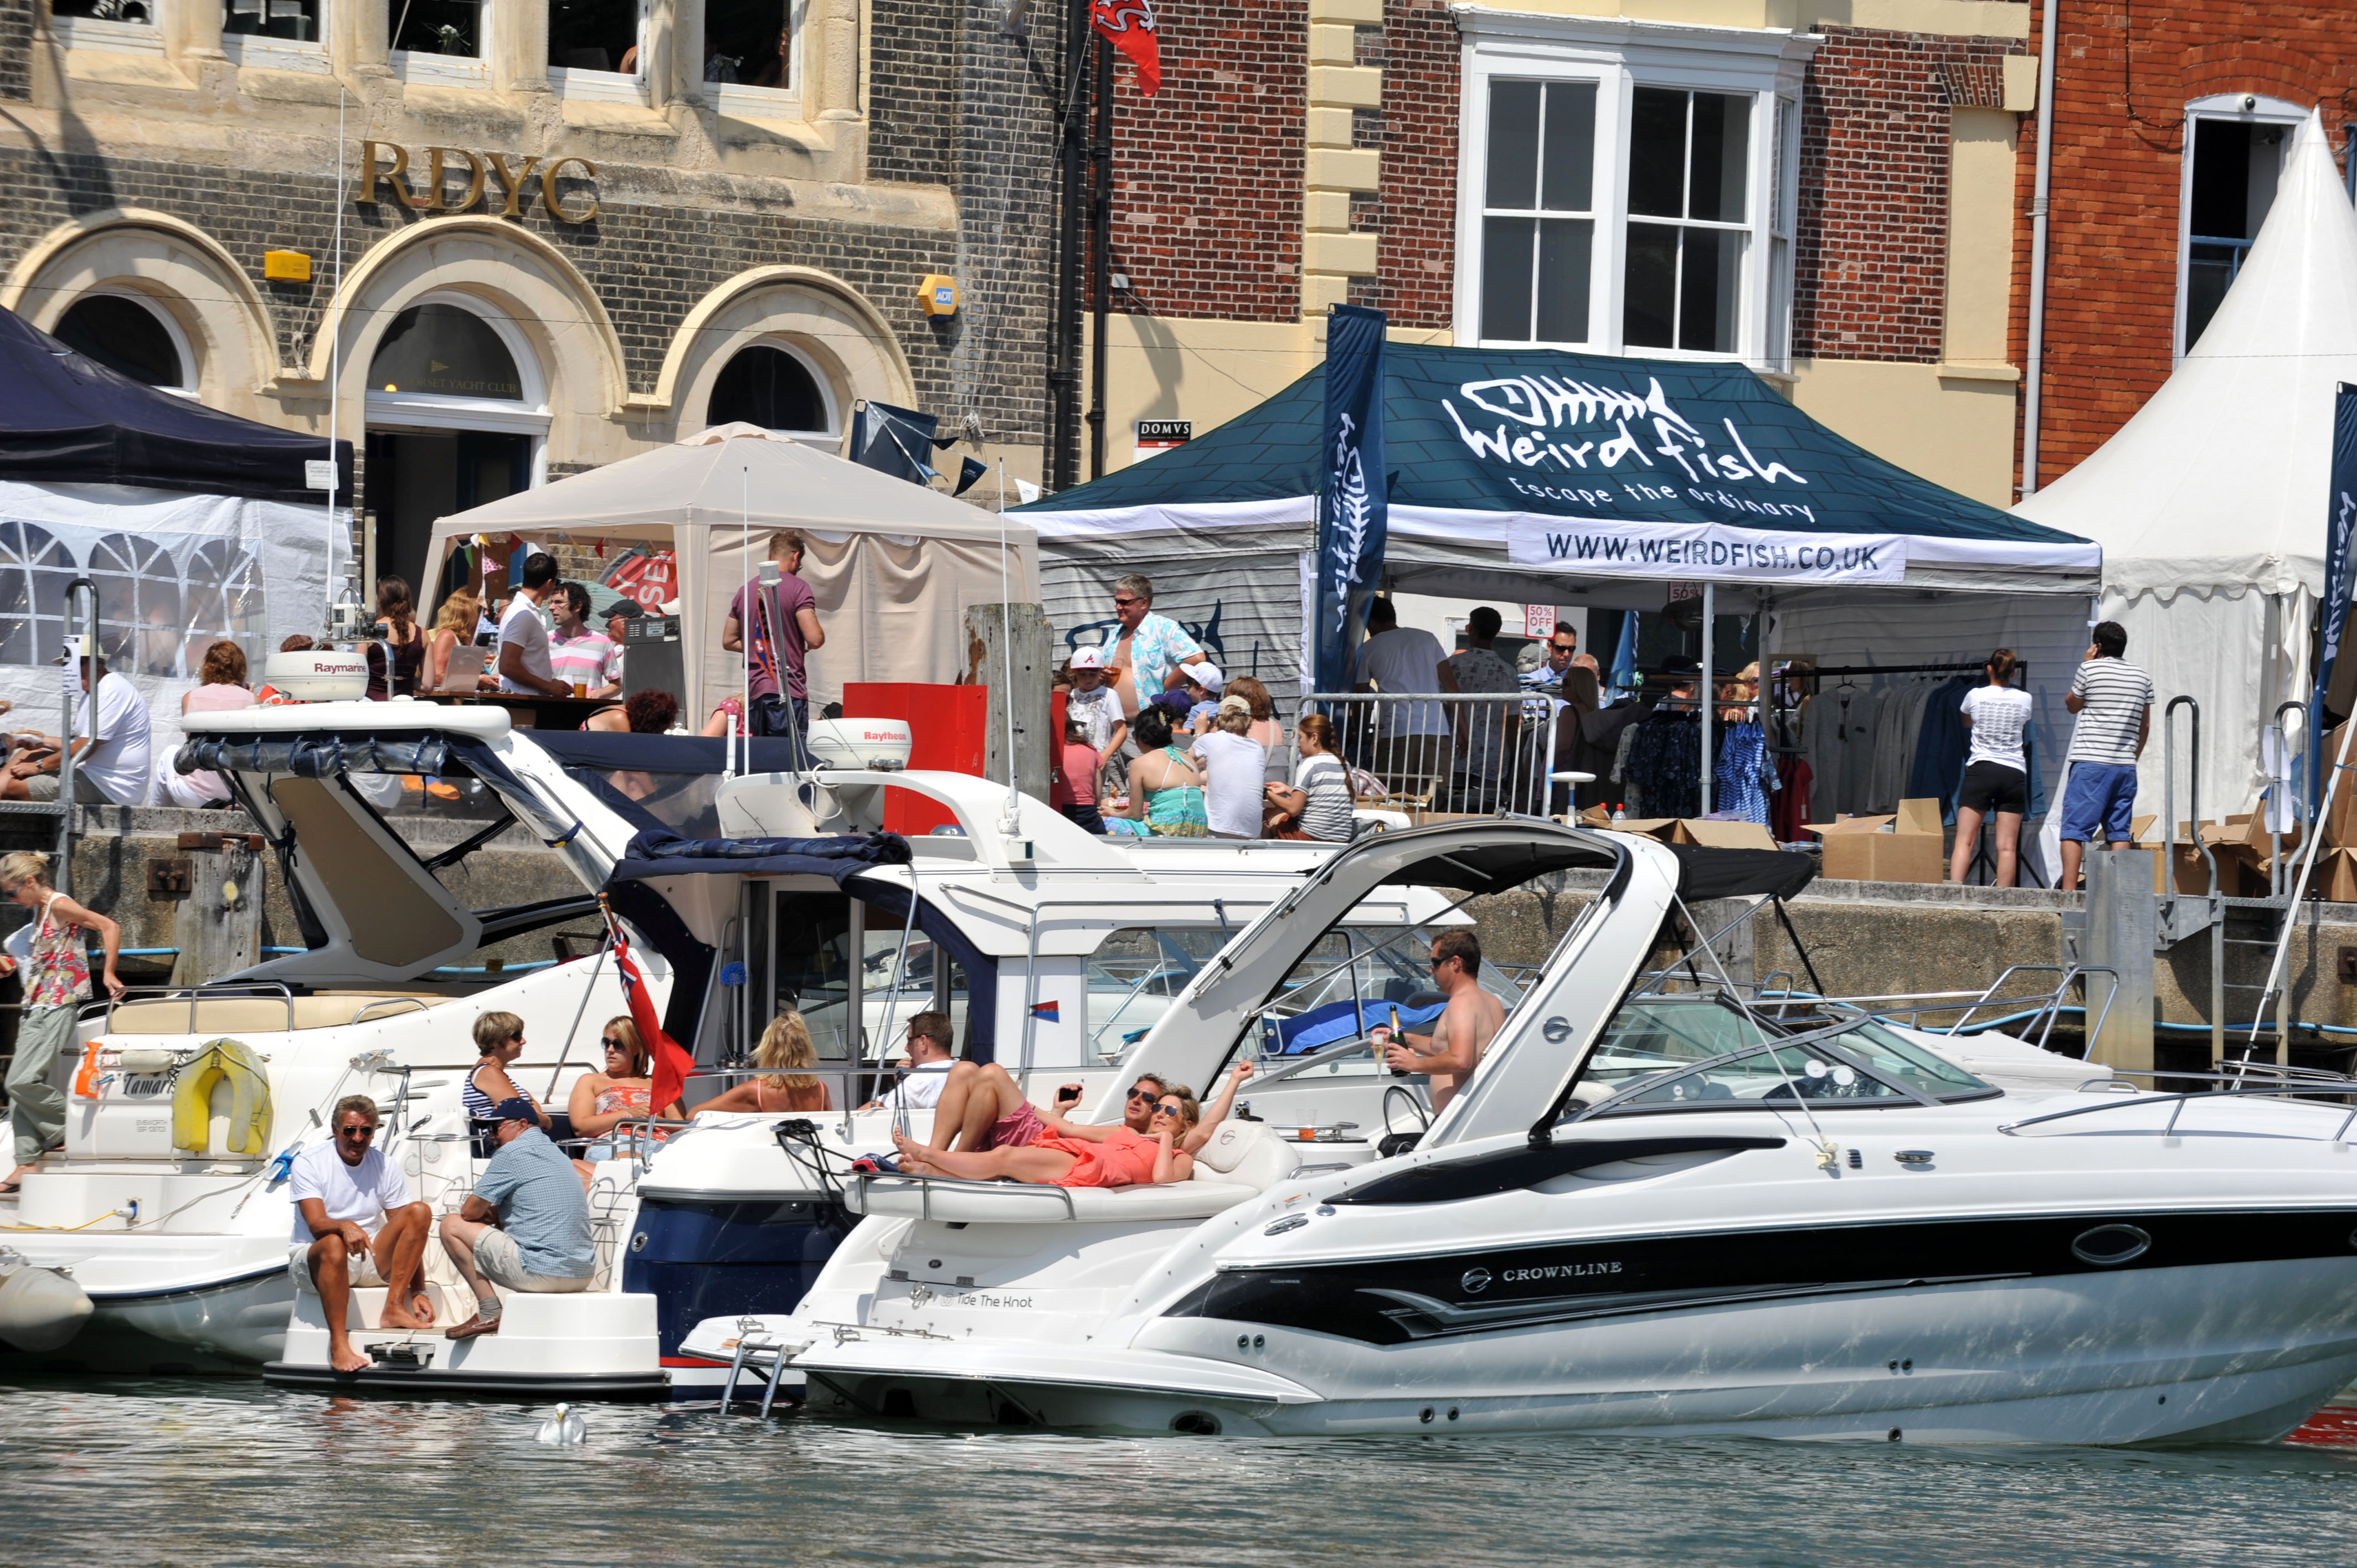 Weird Fish sponsors the Pommery Dorset Seafood Festival for ninth year in a row